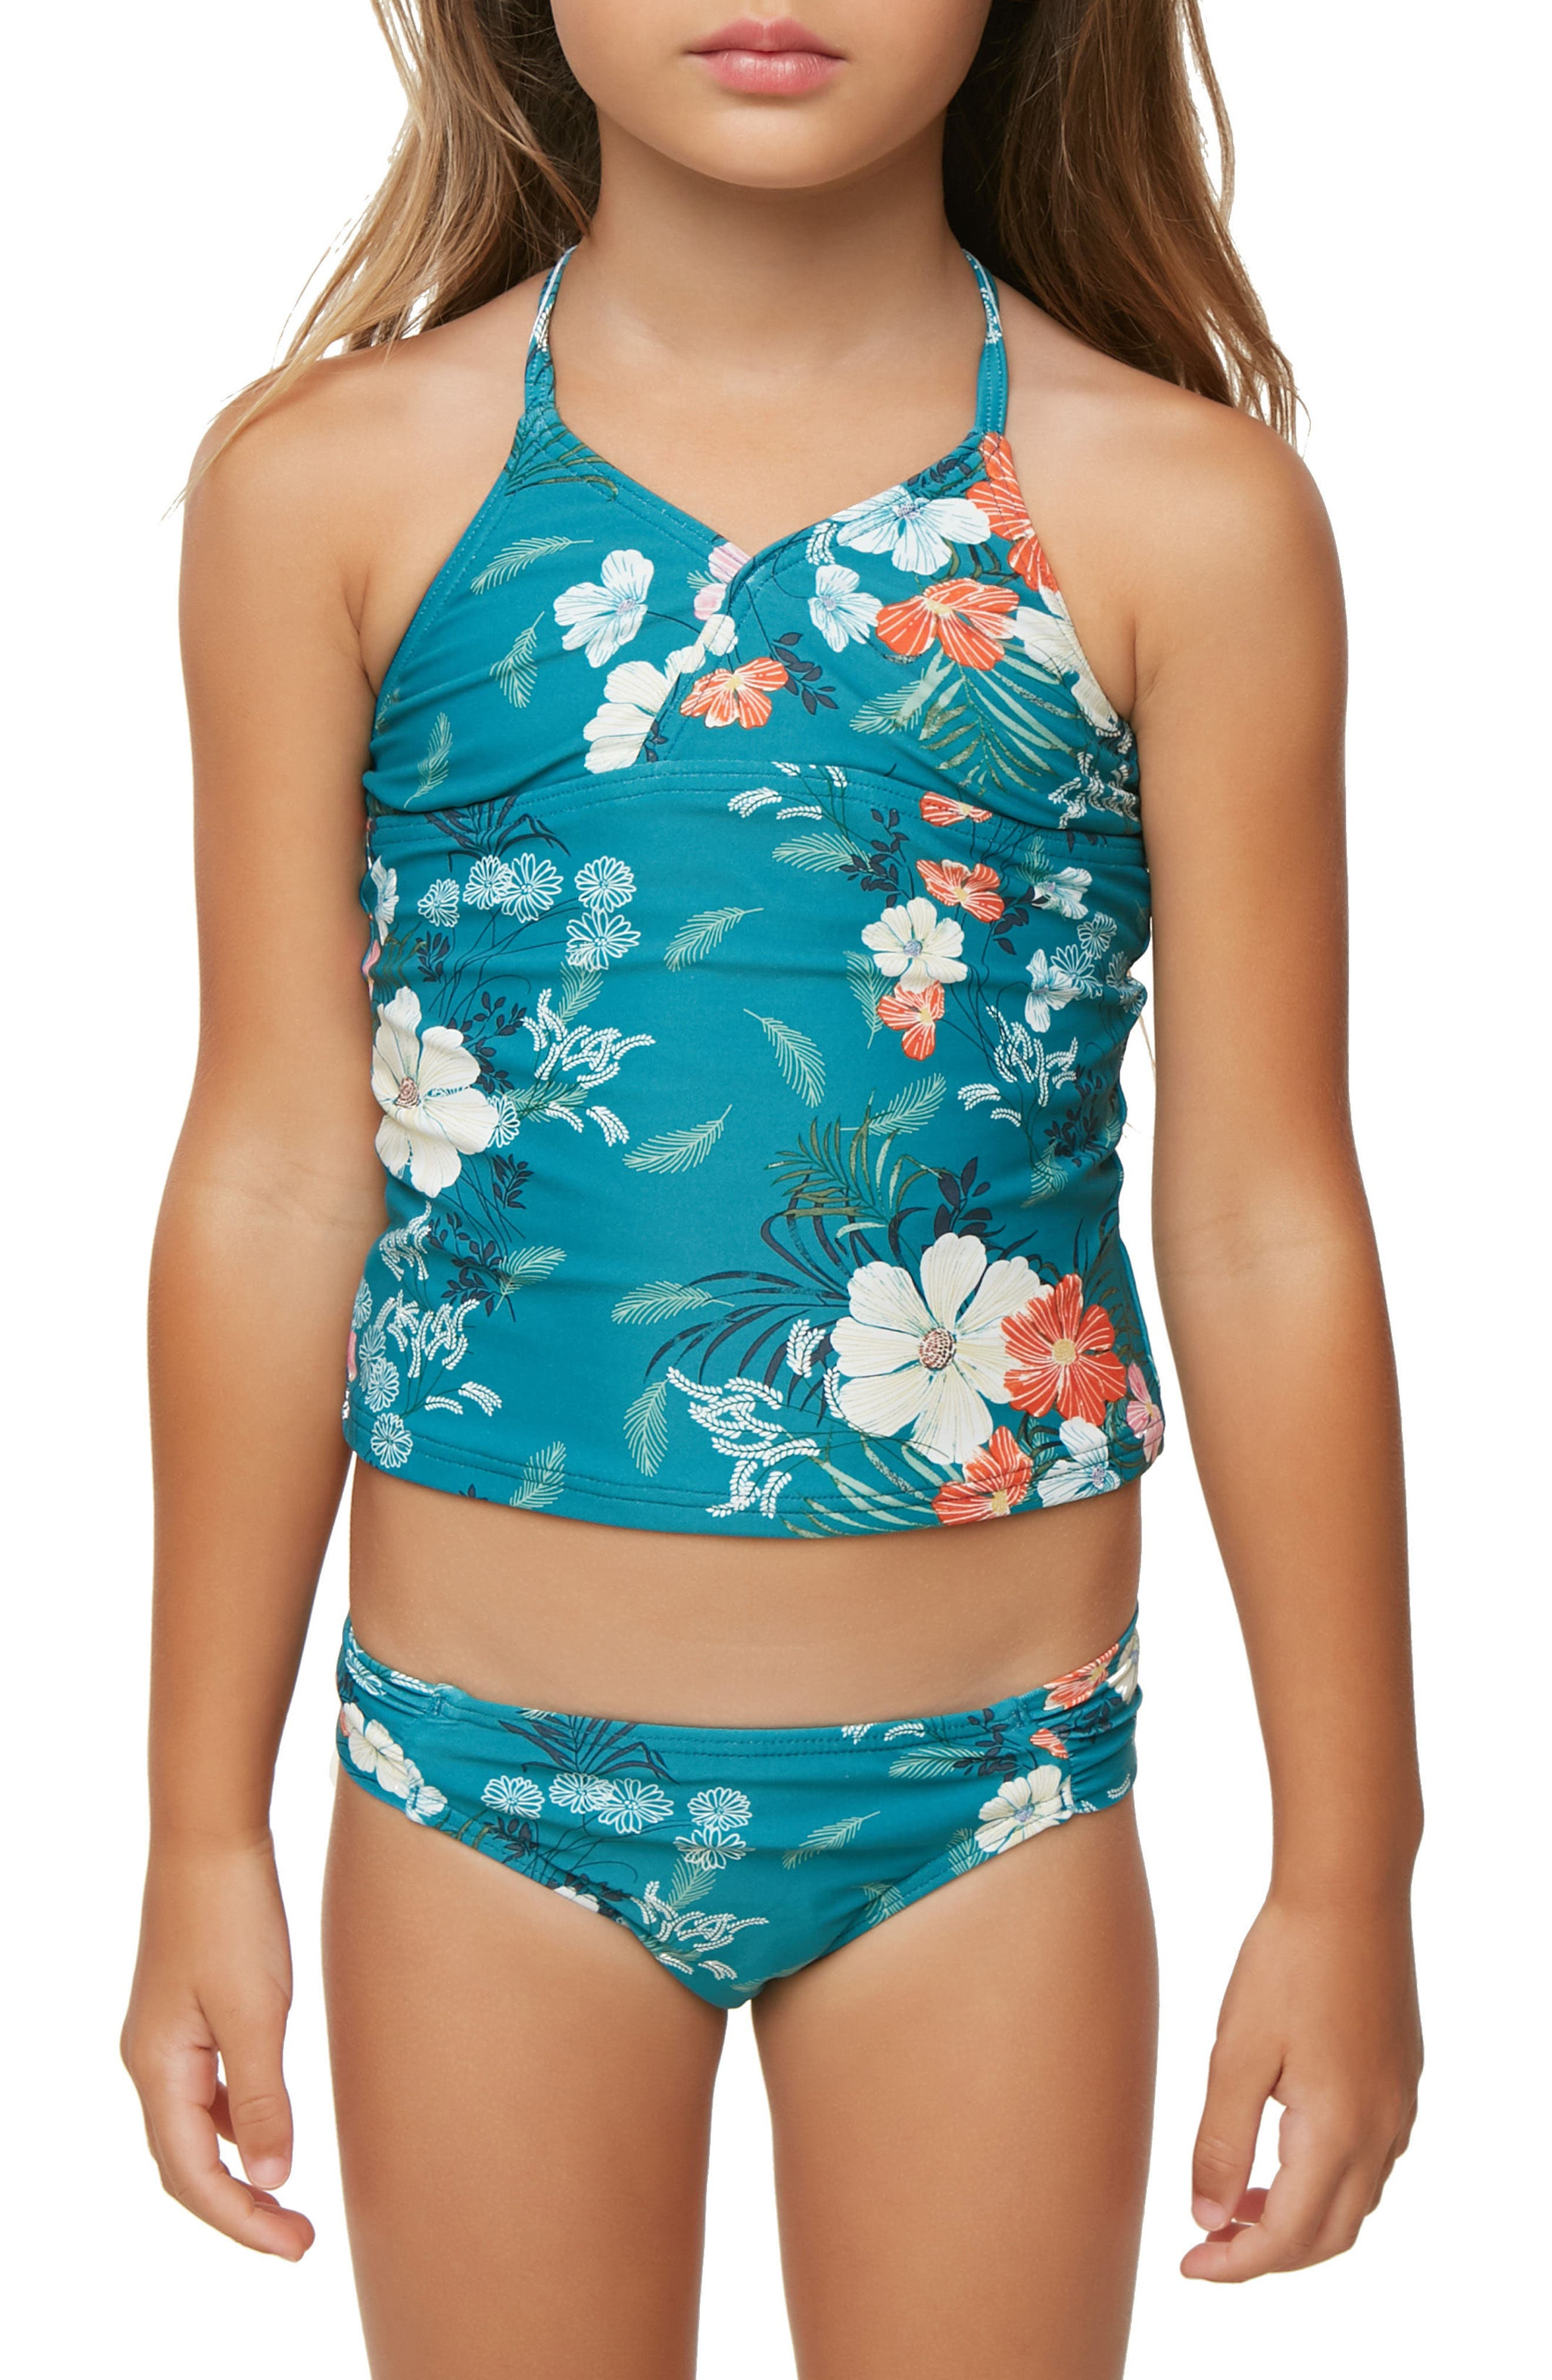 Lucy Floral Two-Piece Swimsuit,                             Alternate thumbnail 2, color,                             441